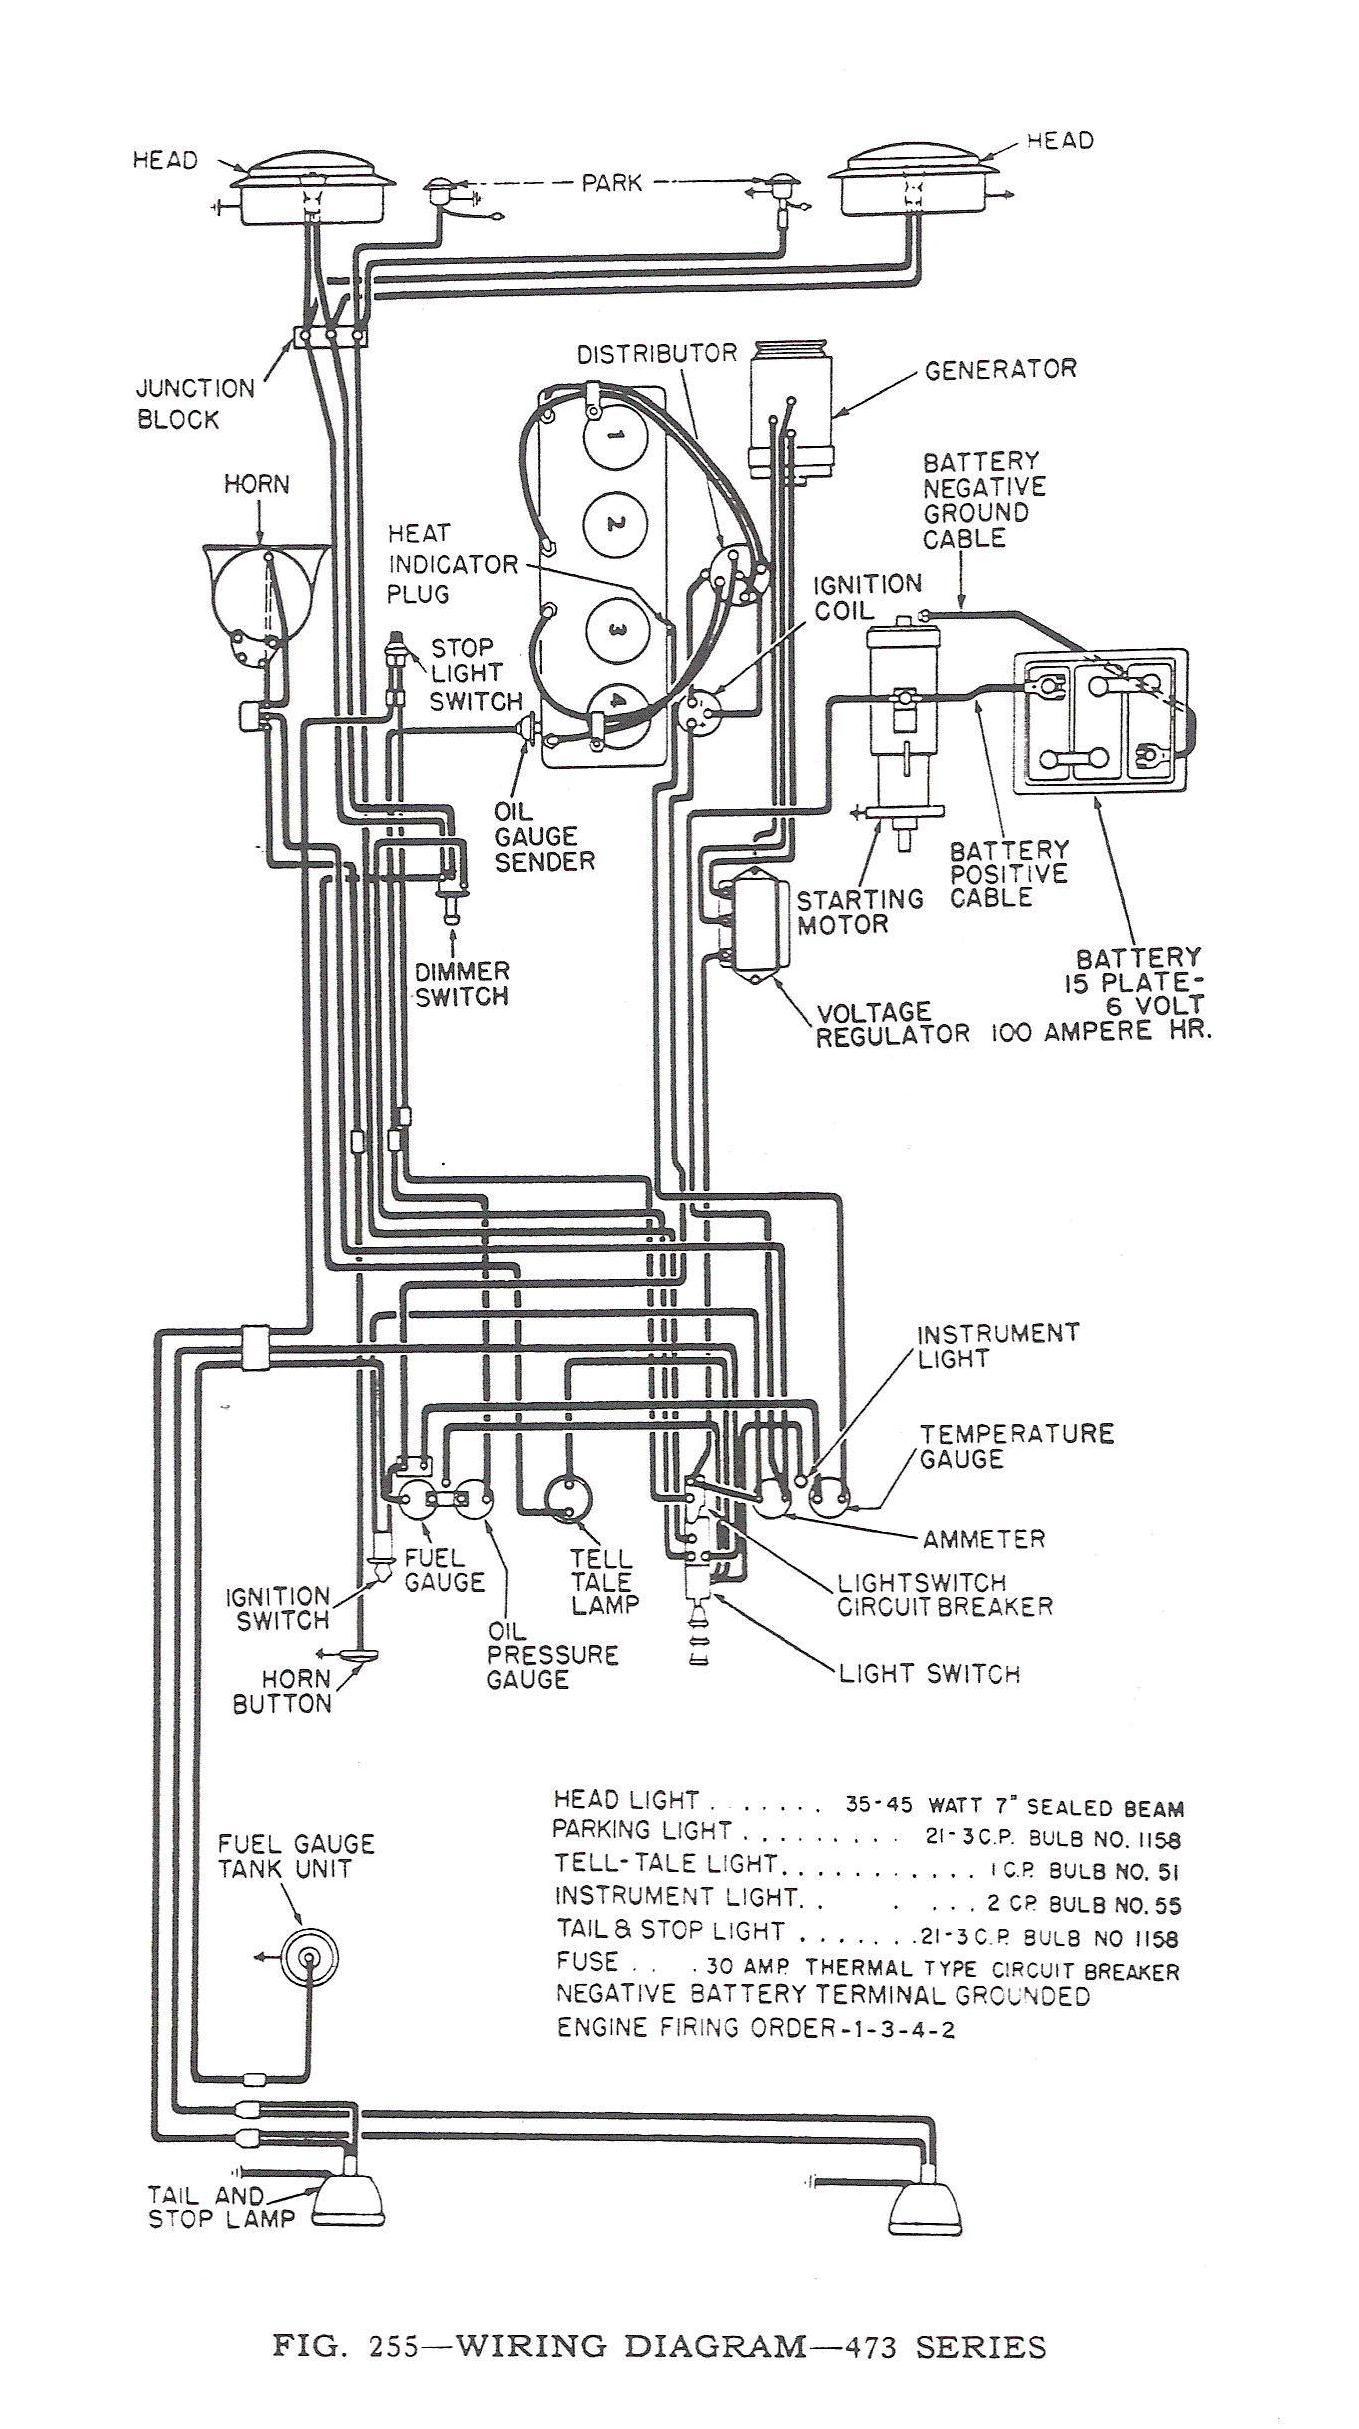 64 Cj5 Wiring Diagram FULL HD Version Wiring Diagram - LIZA-DIAGRAM .EXPERTSUNIVERSITY.ITDiagram Database